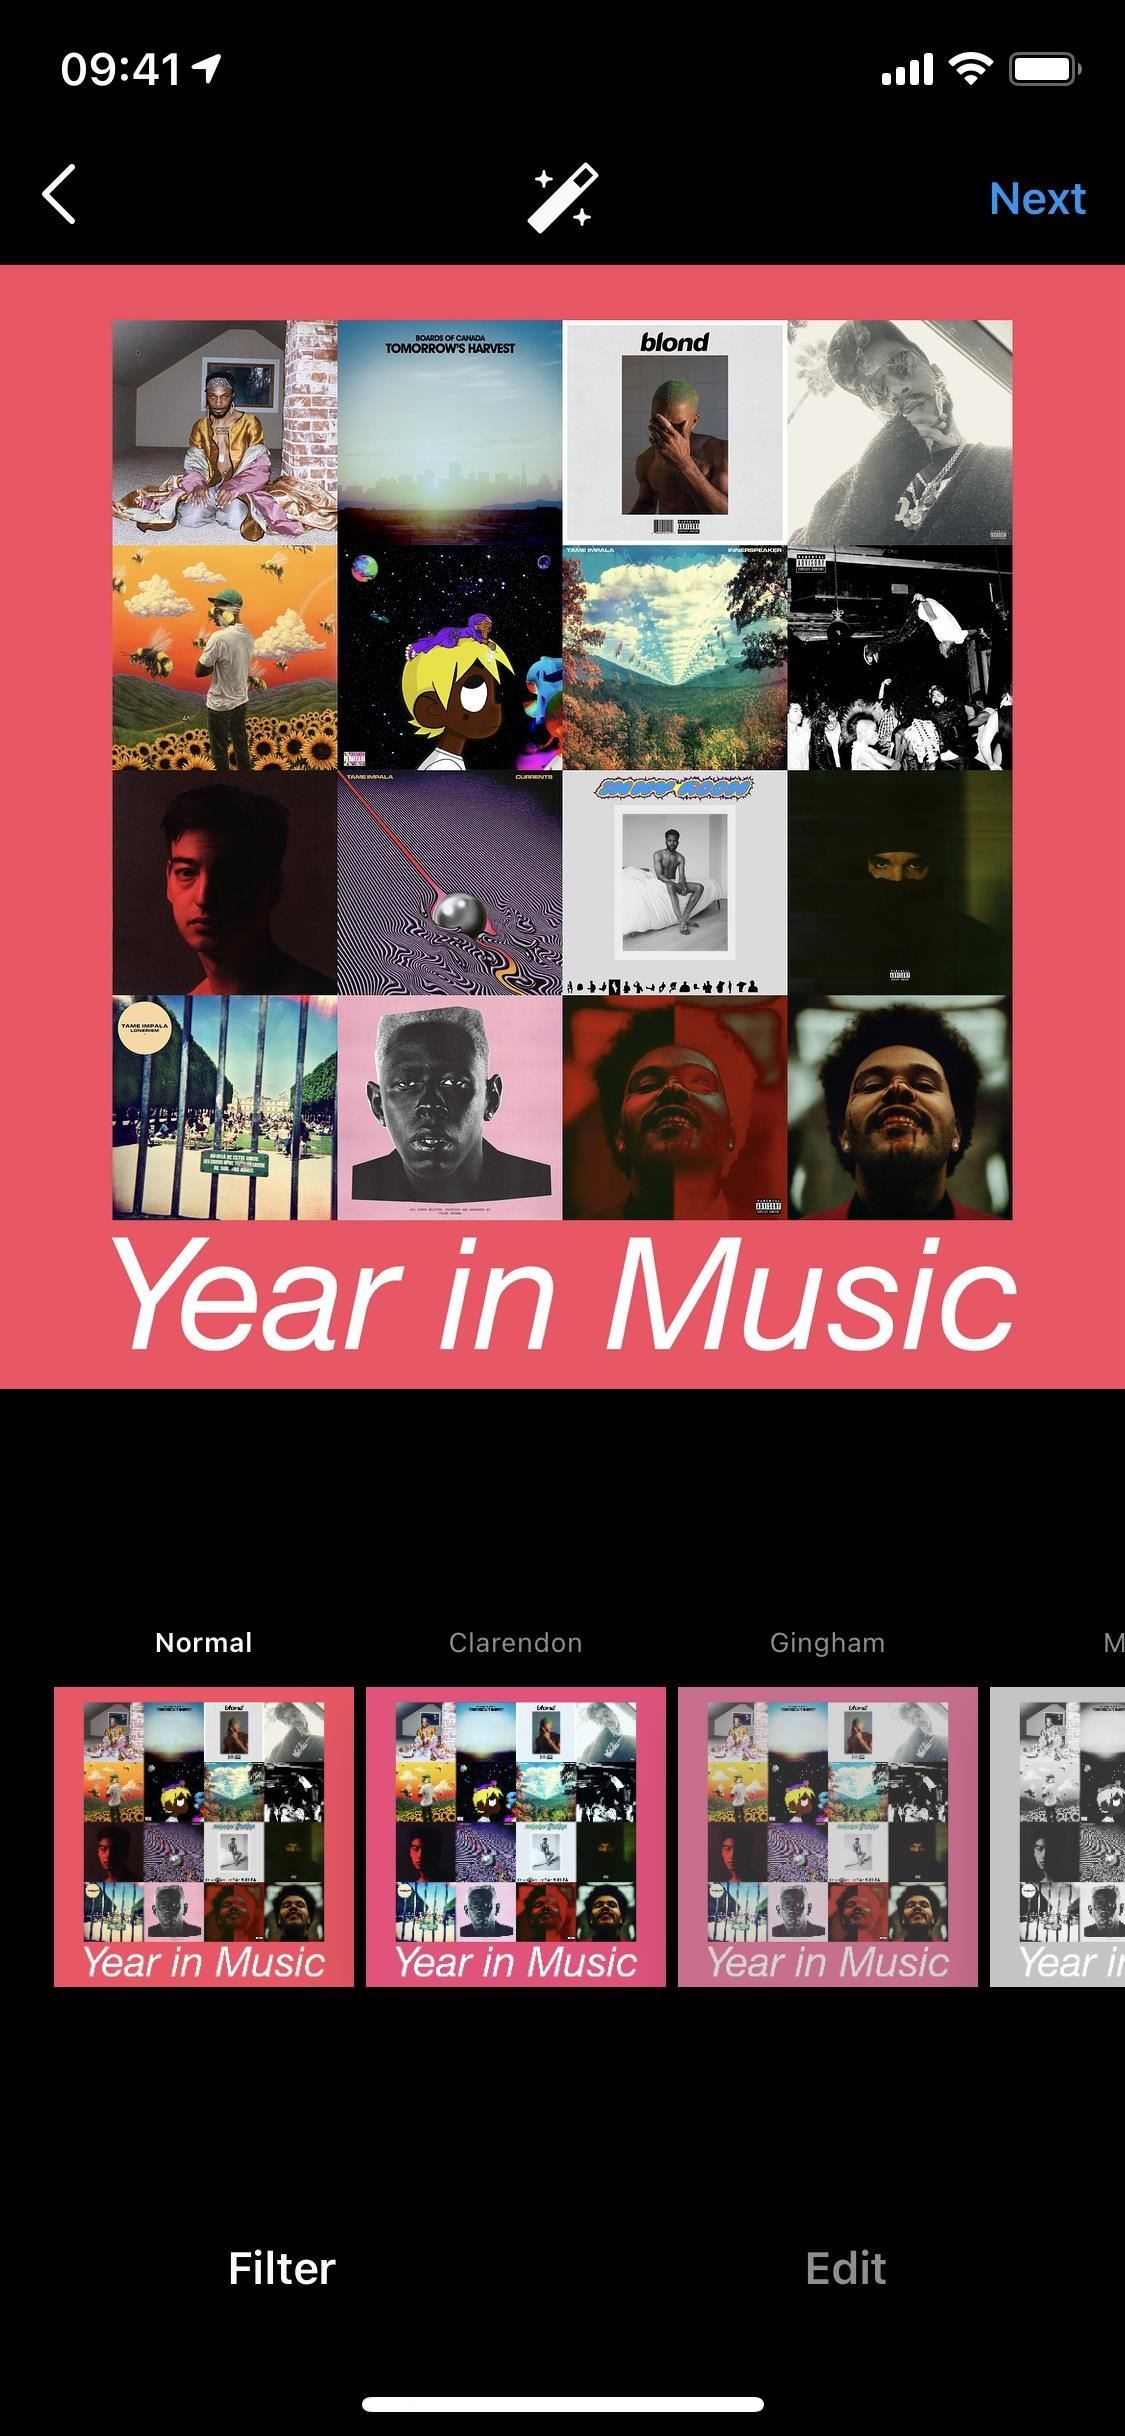 Create a 'My Year in Music' cover collage from your iPhone's music library to share on social media